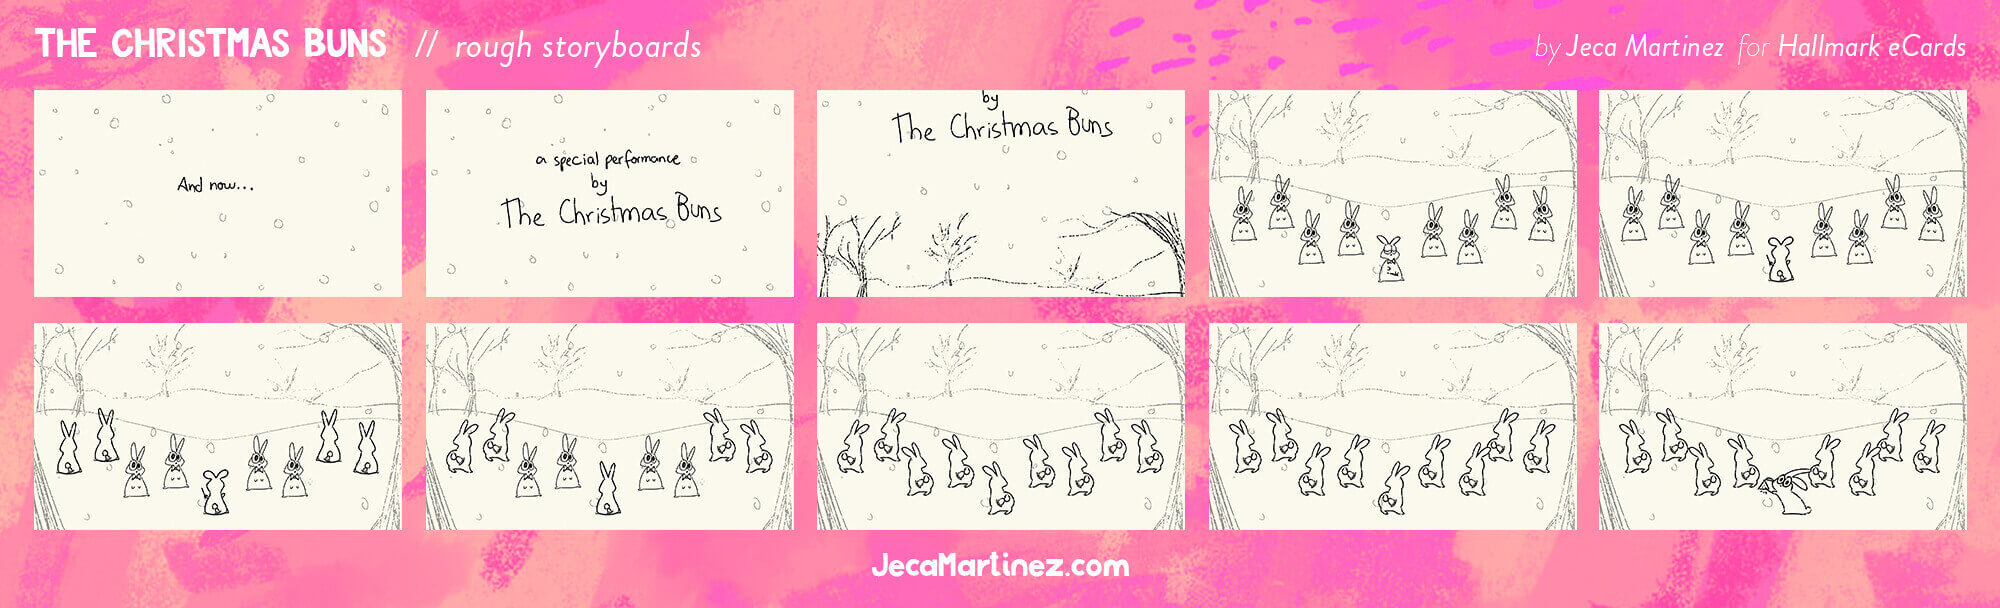 The Christmas Buns Animation Rough Storyboards for Hallmark by Jeca Martinez